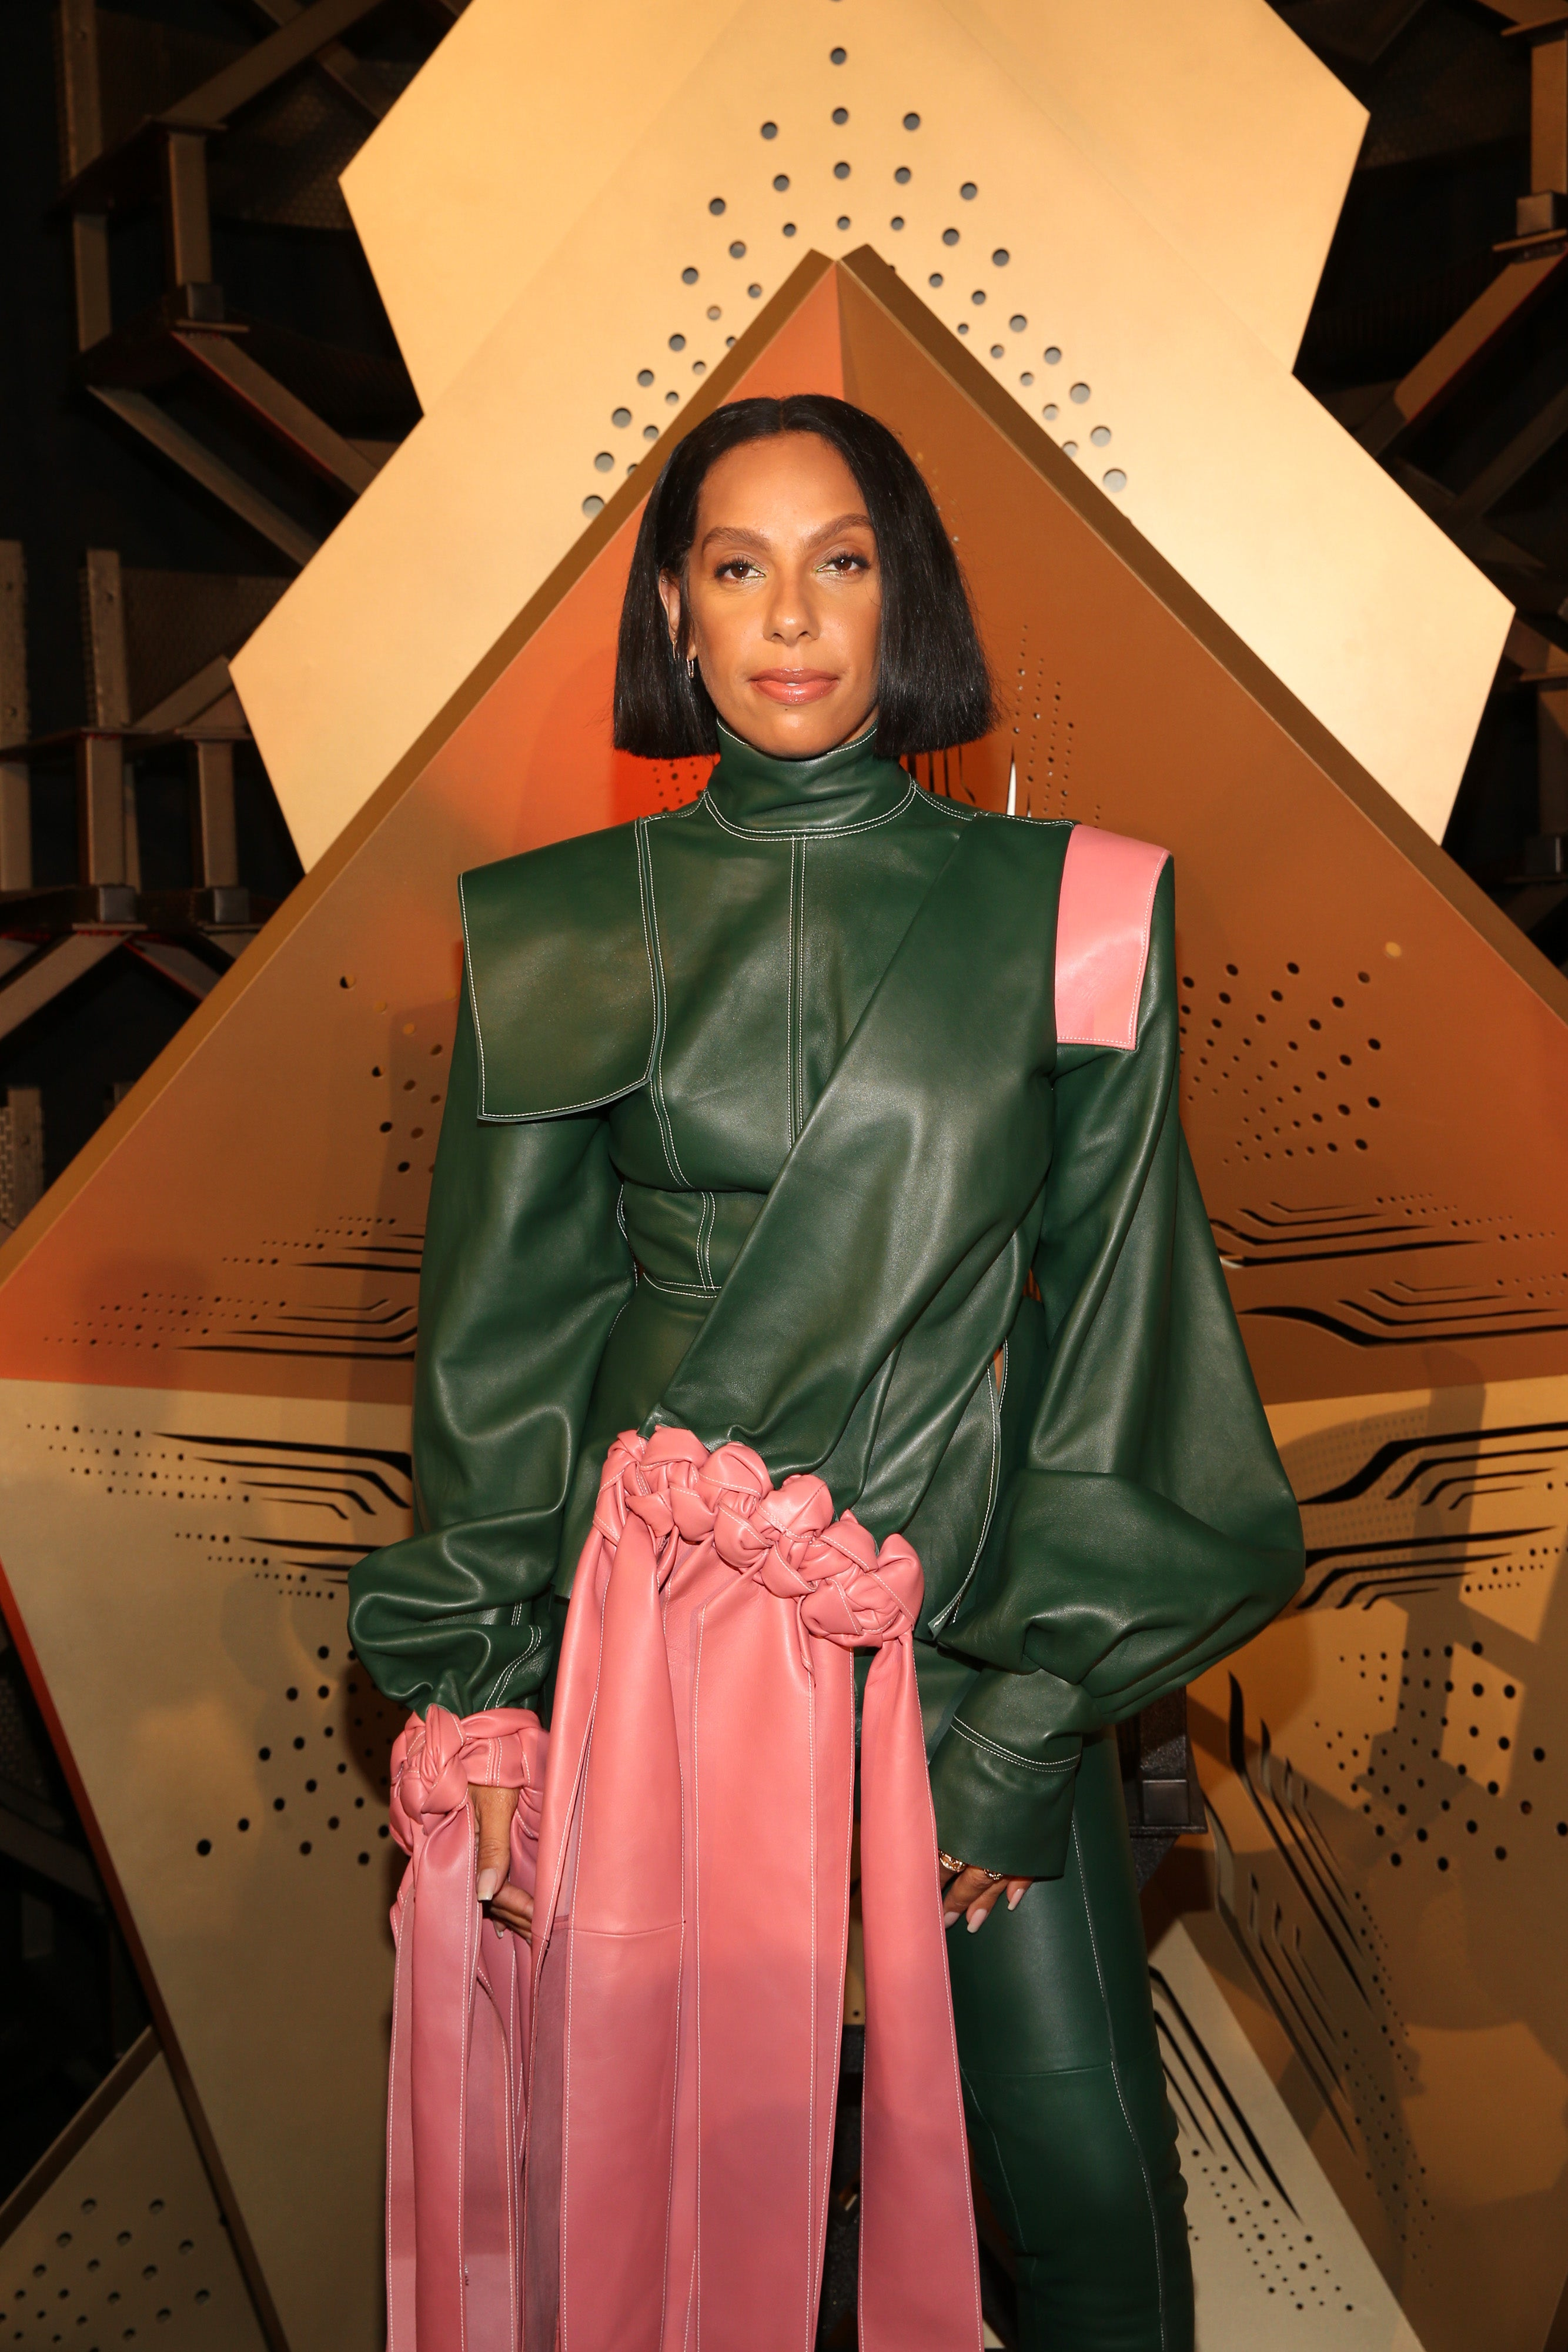 'Queen & Slim' Director Melina Matsoukas Claims Golden Globes Voters Didn't Want to Watch Her Film